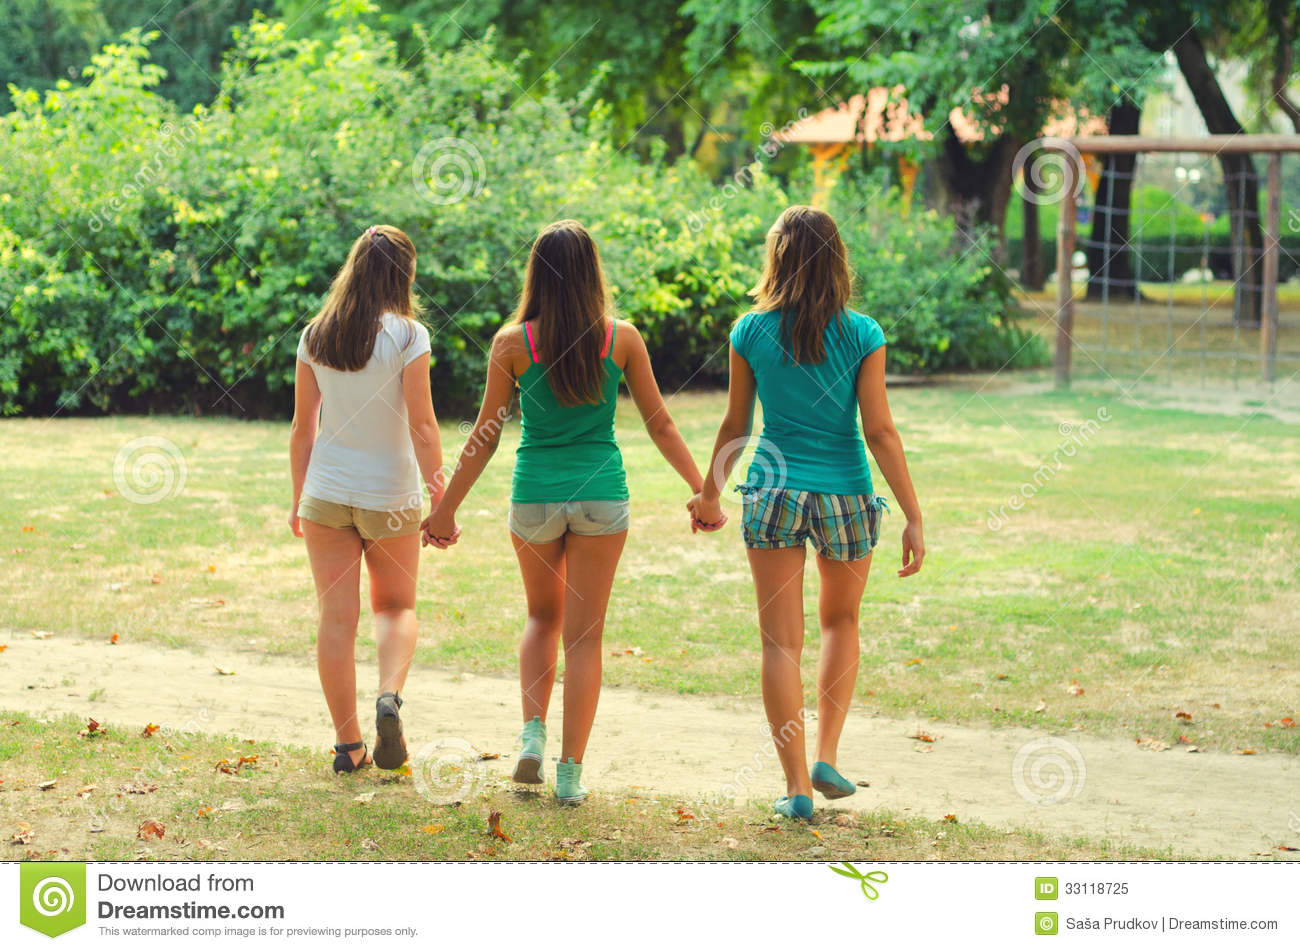 Best Friends Holding Hands Royalty Free Stock Photo - Image: 33118725 Best Friends Holding Hands Girls